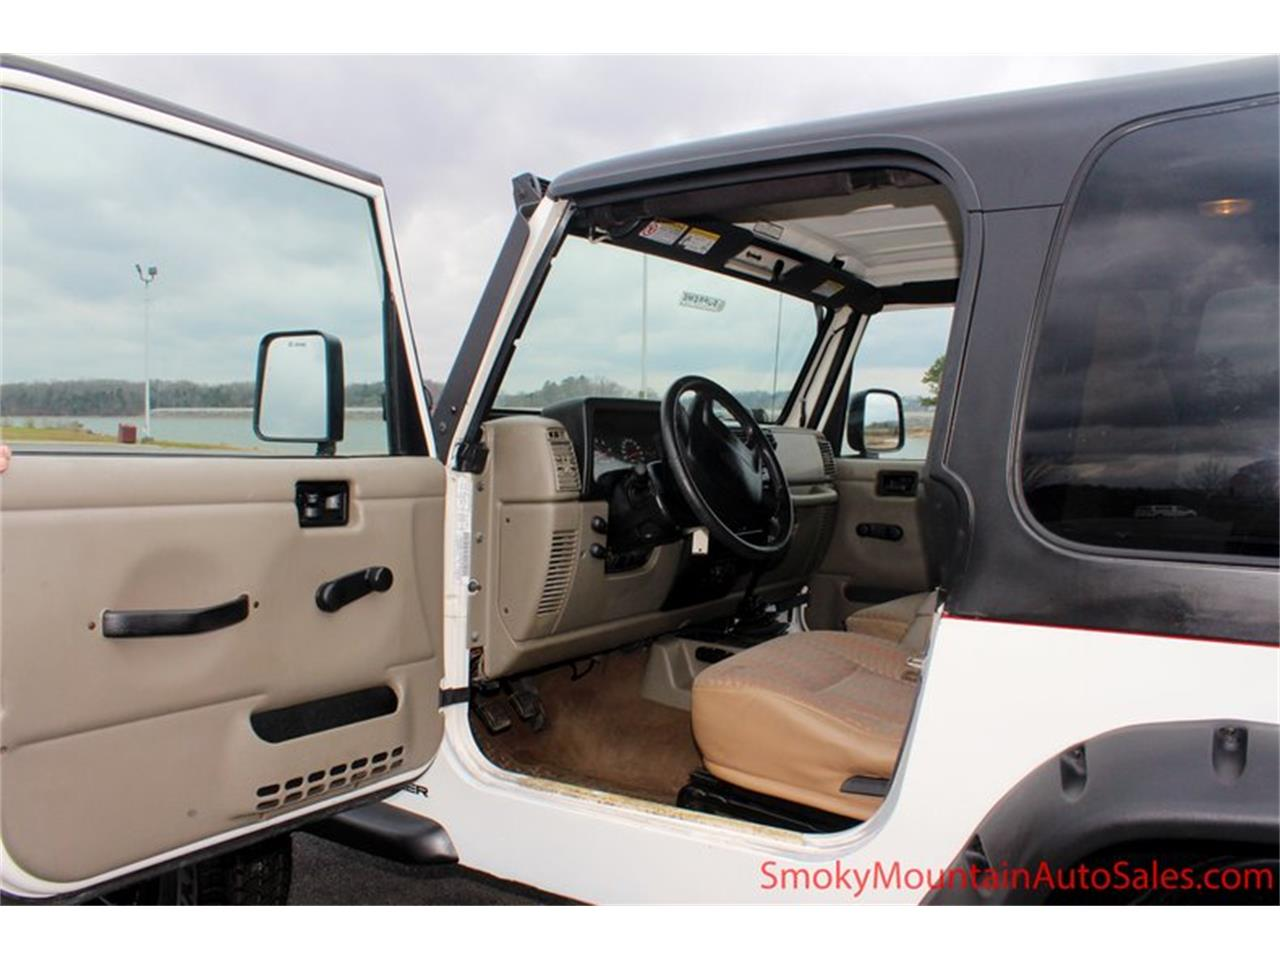 Large Picture of '03 Jeep Wrangler - $12,995.00 - P95Y